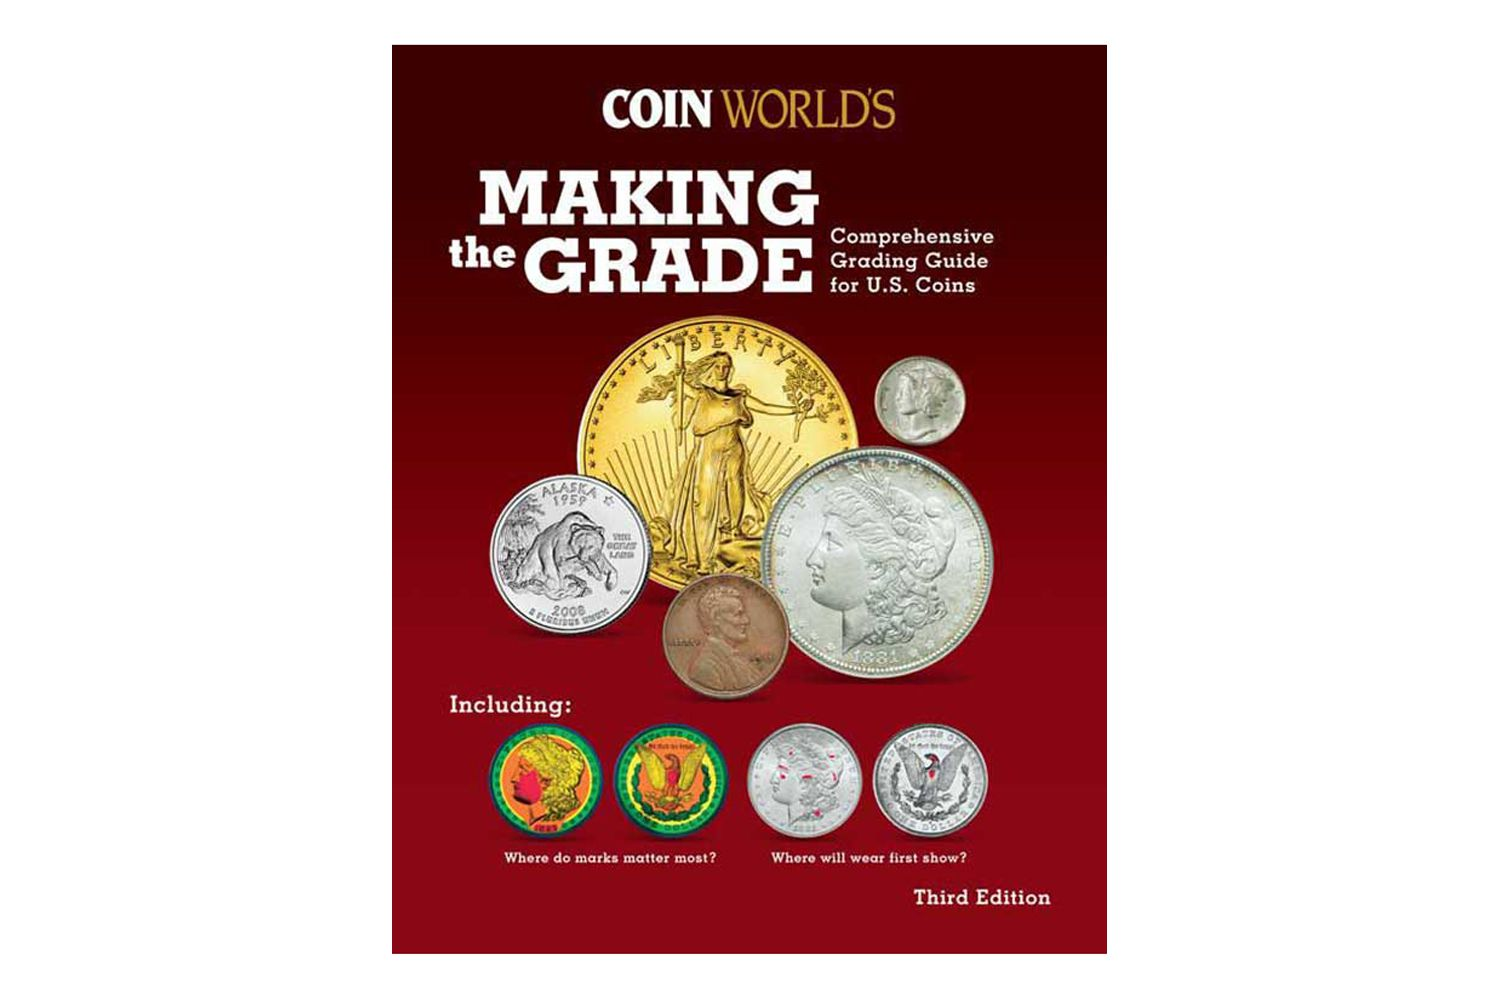 Making the Grade, Comprehensive Grading Guide for United States Coins, Coin World